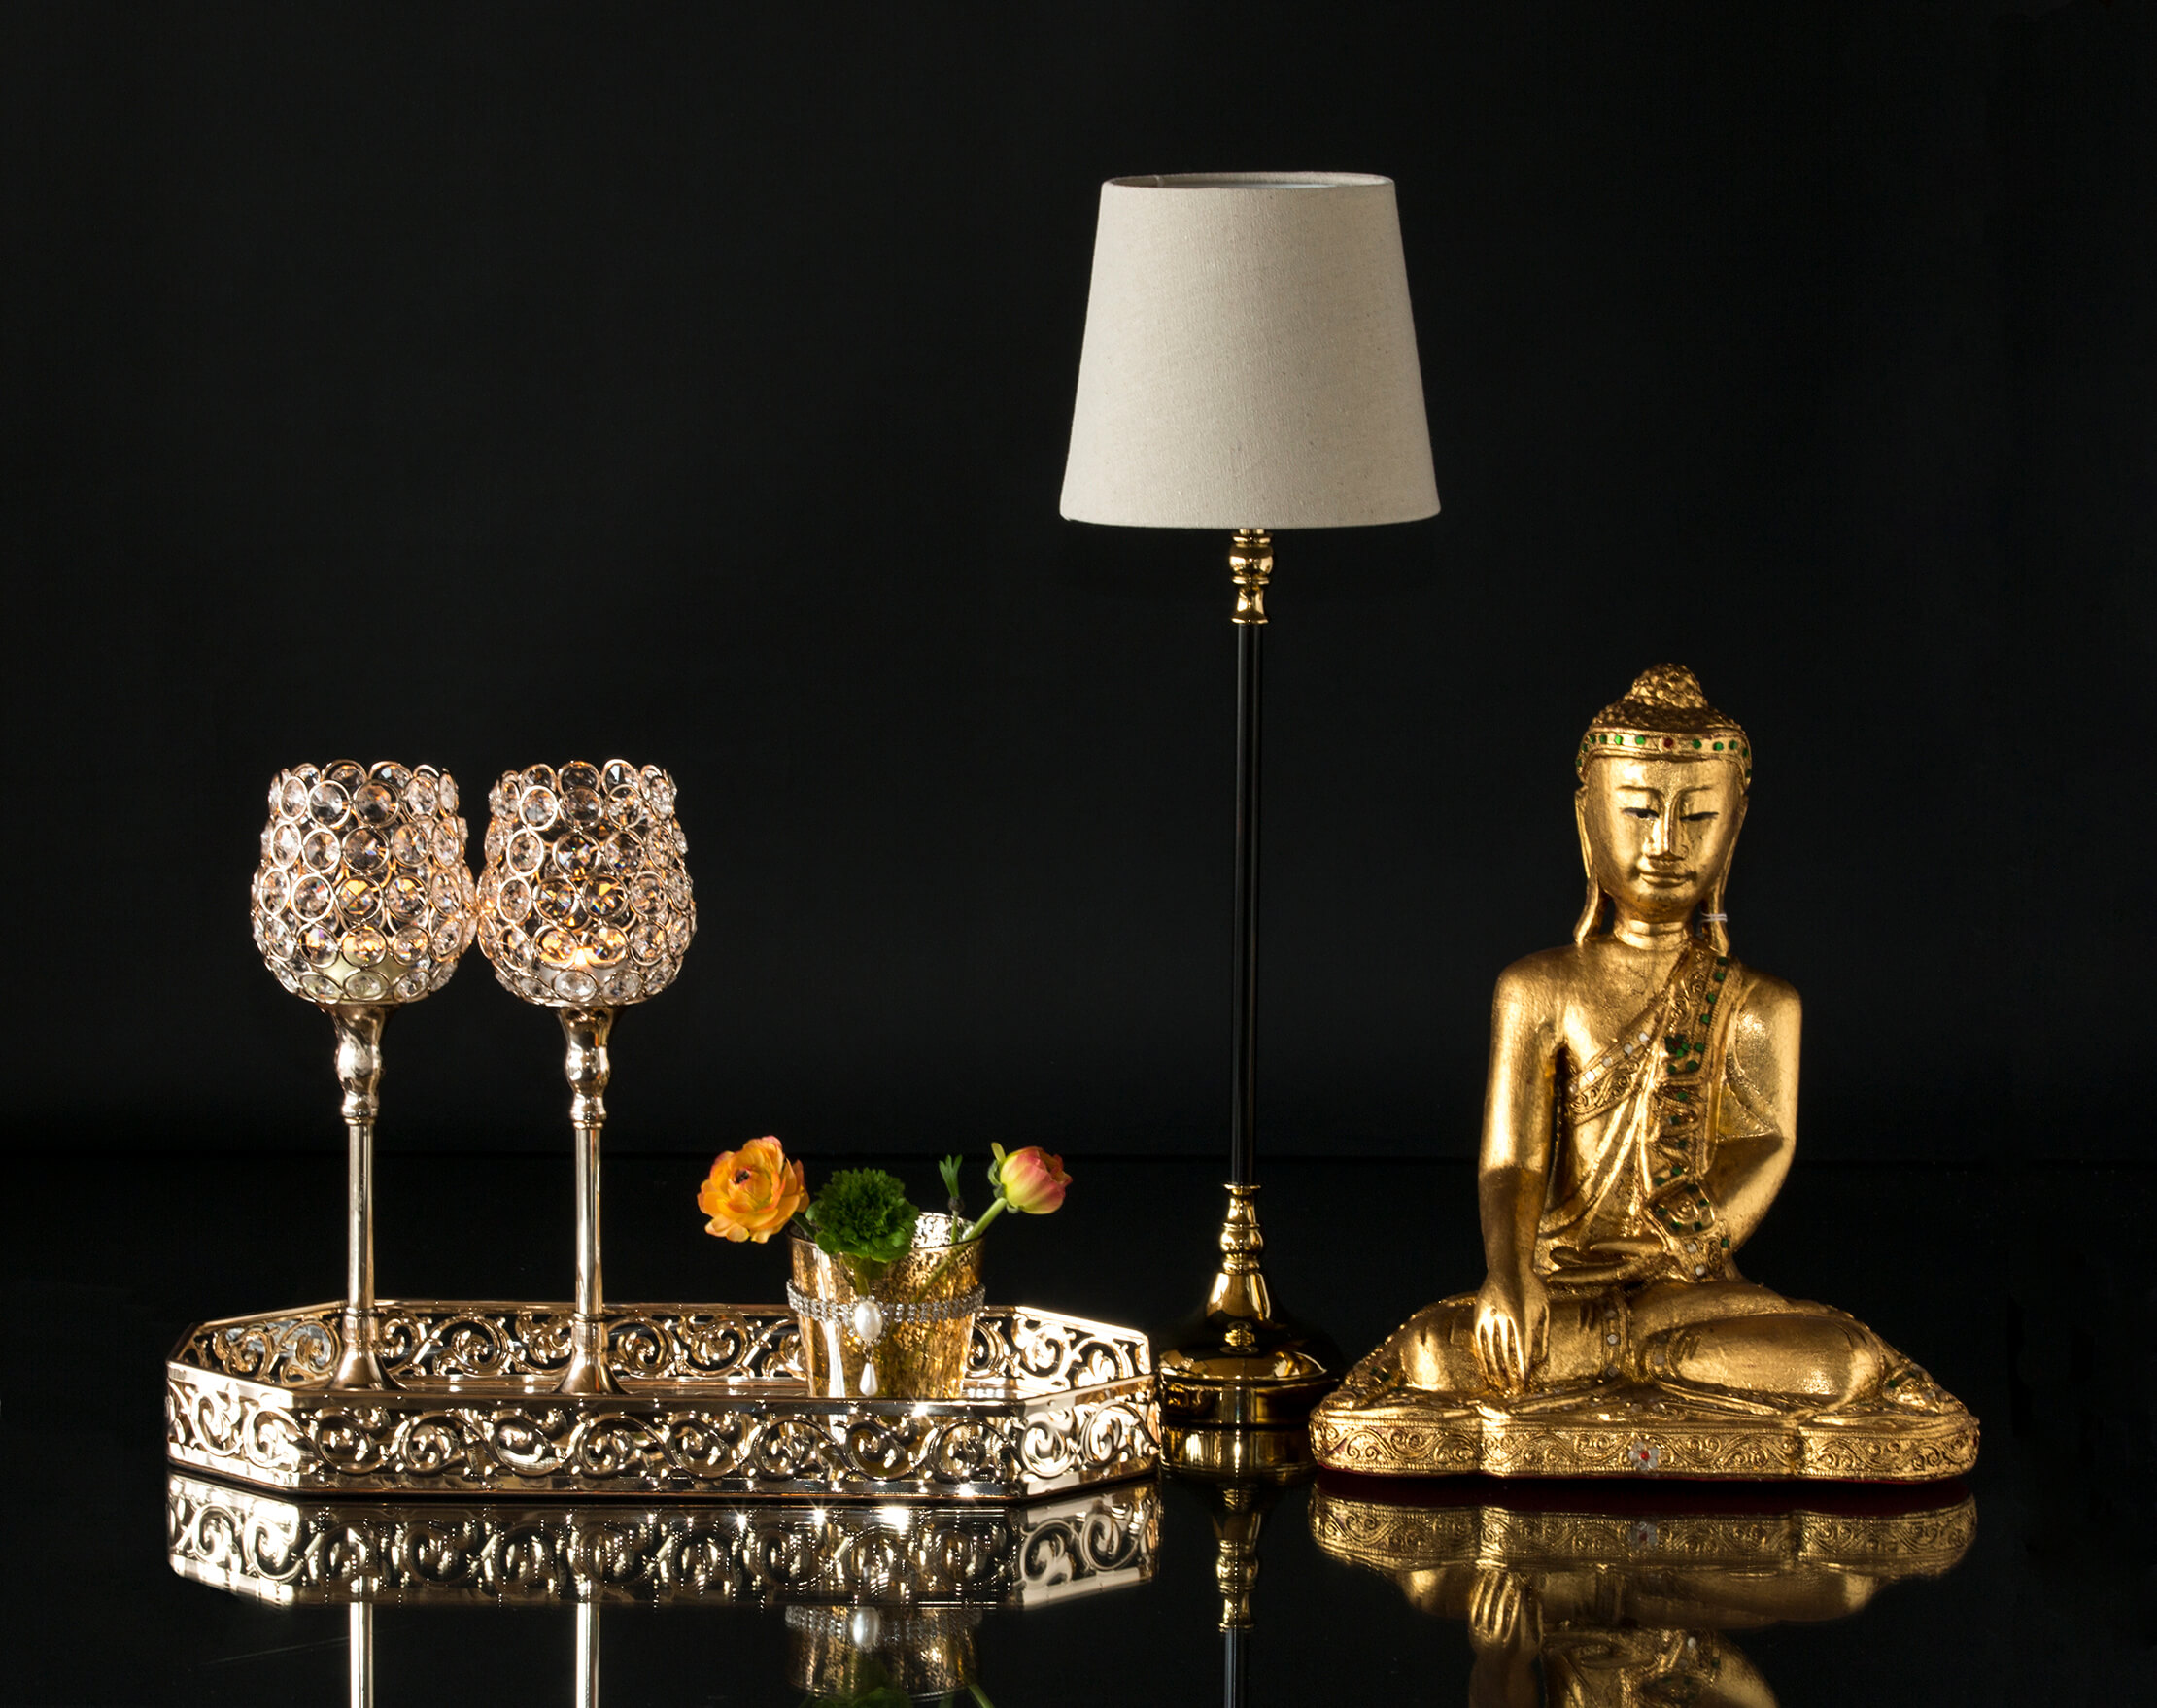 Buddha next to small lamp and mirror tray with candlesticks